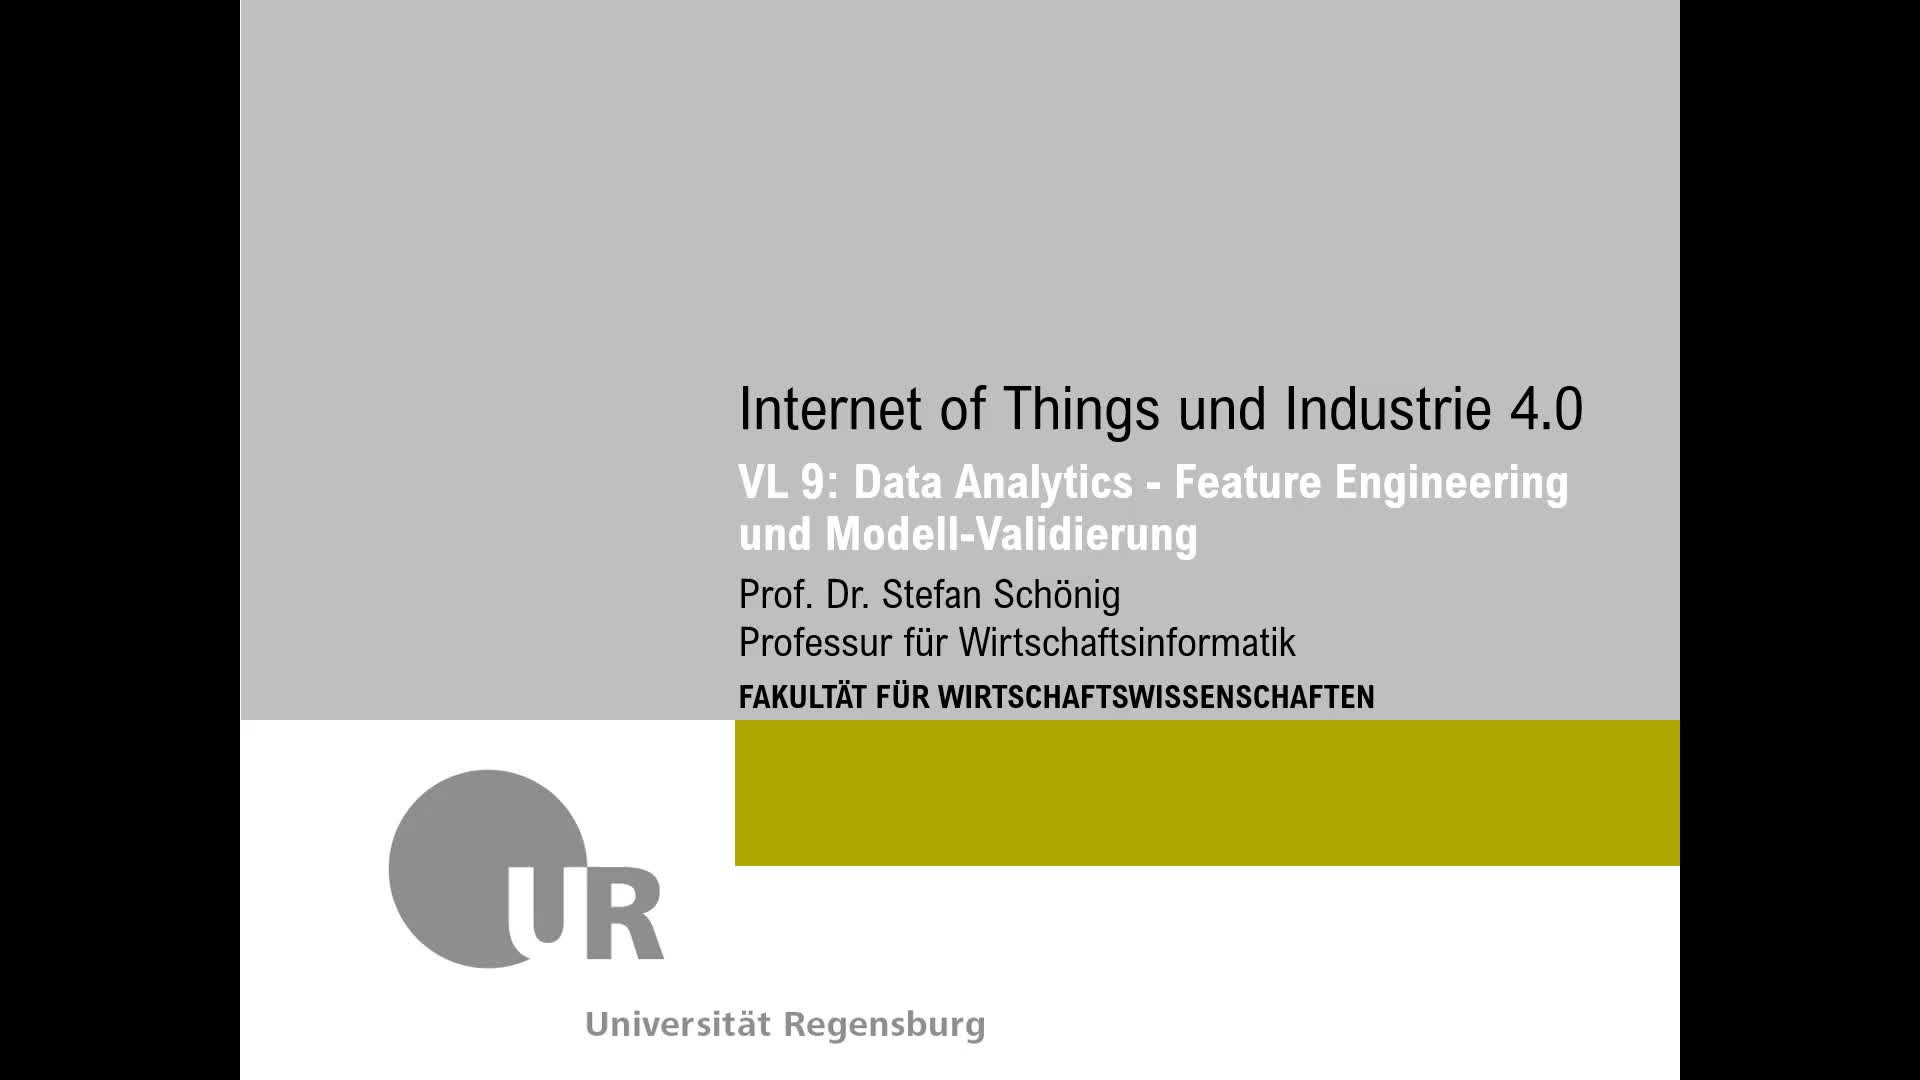 SS 2020 - Internet of Things und Industrie 4.0 - Kapitel 9 (Data Analytics - Feature Engineering)